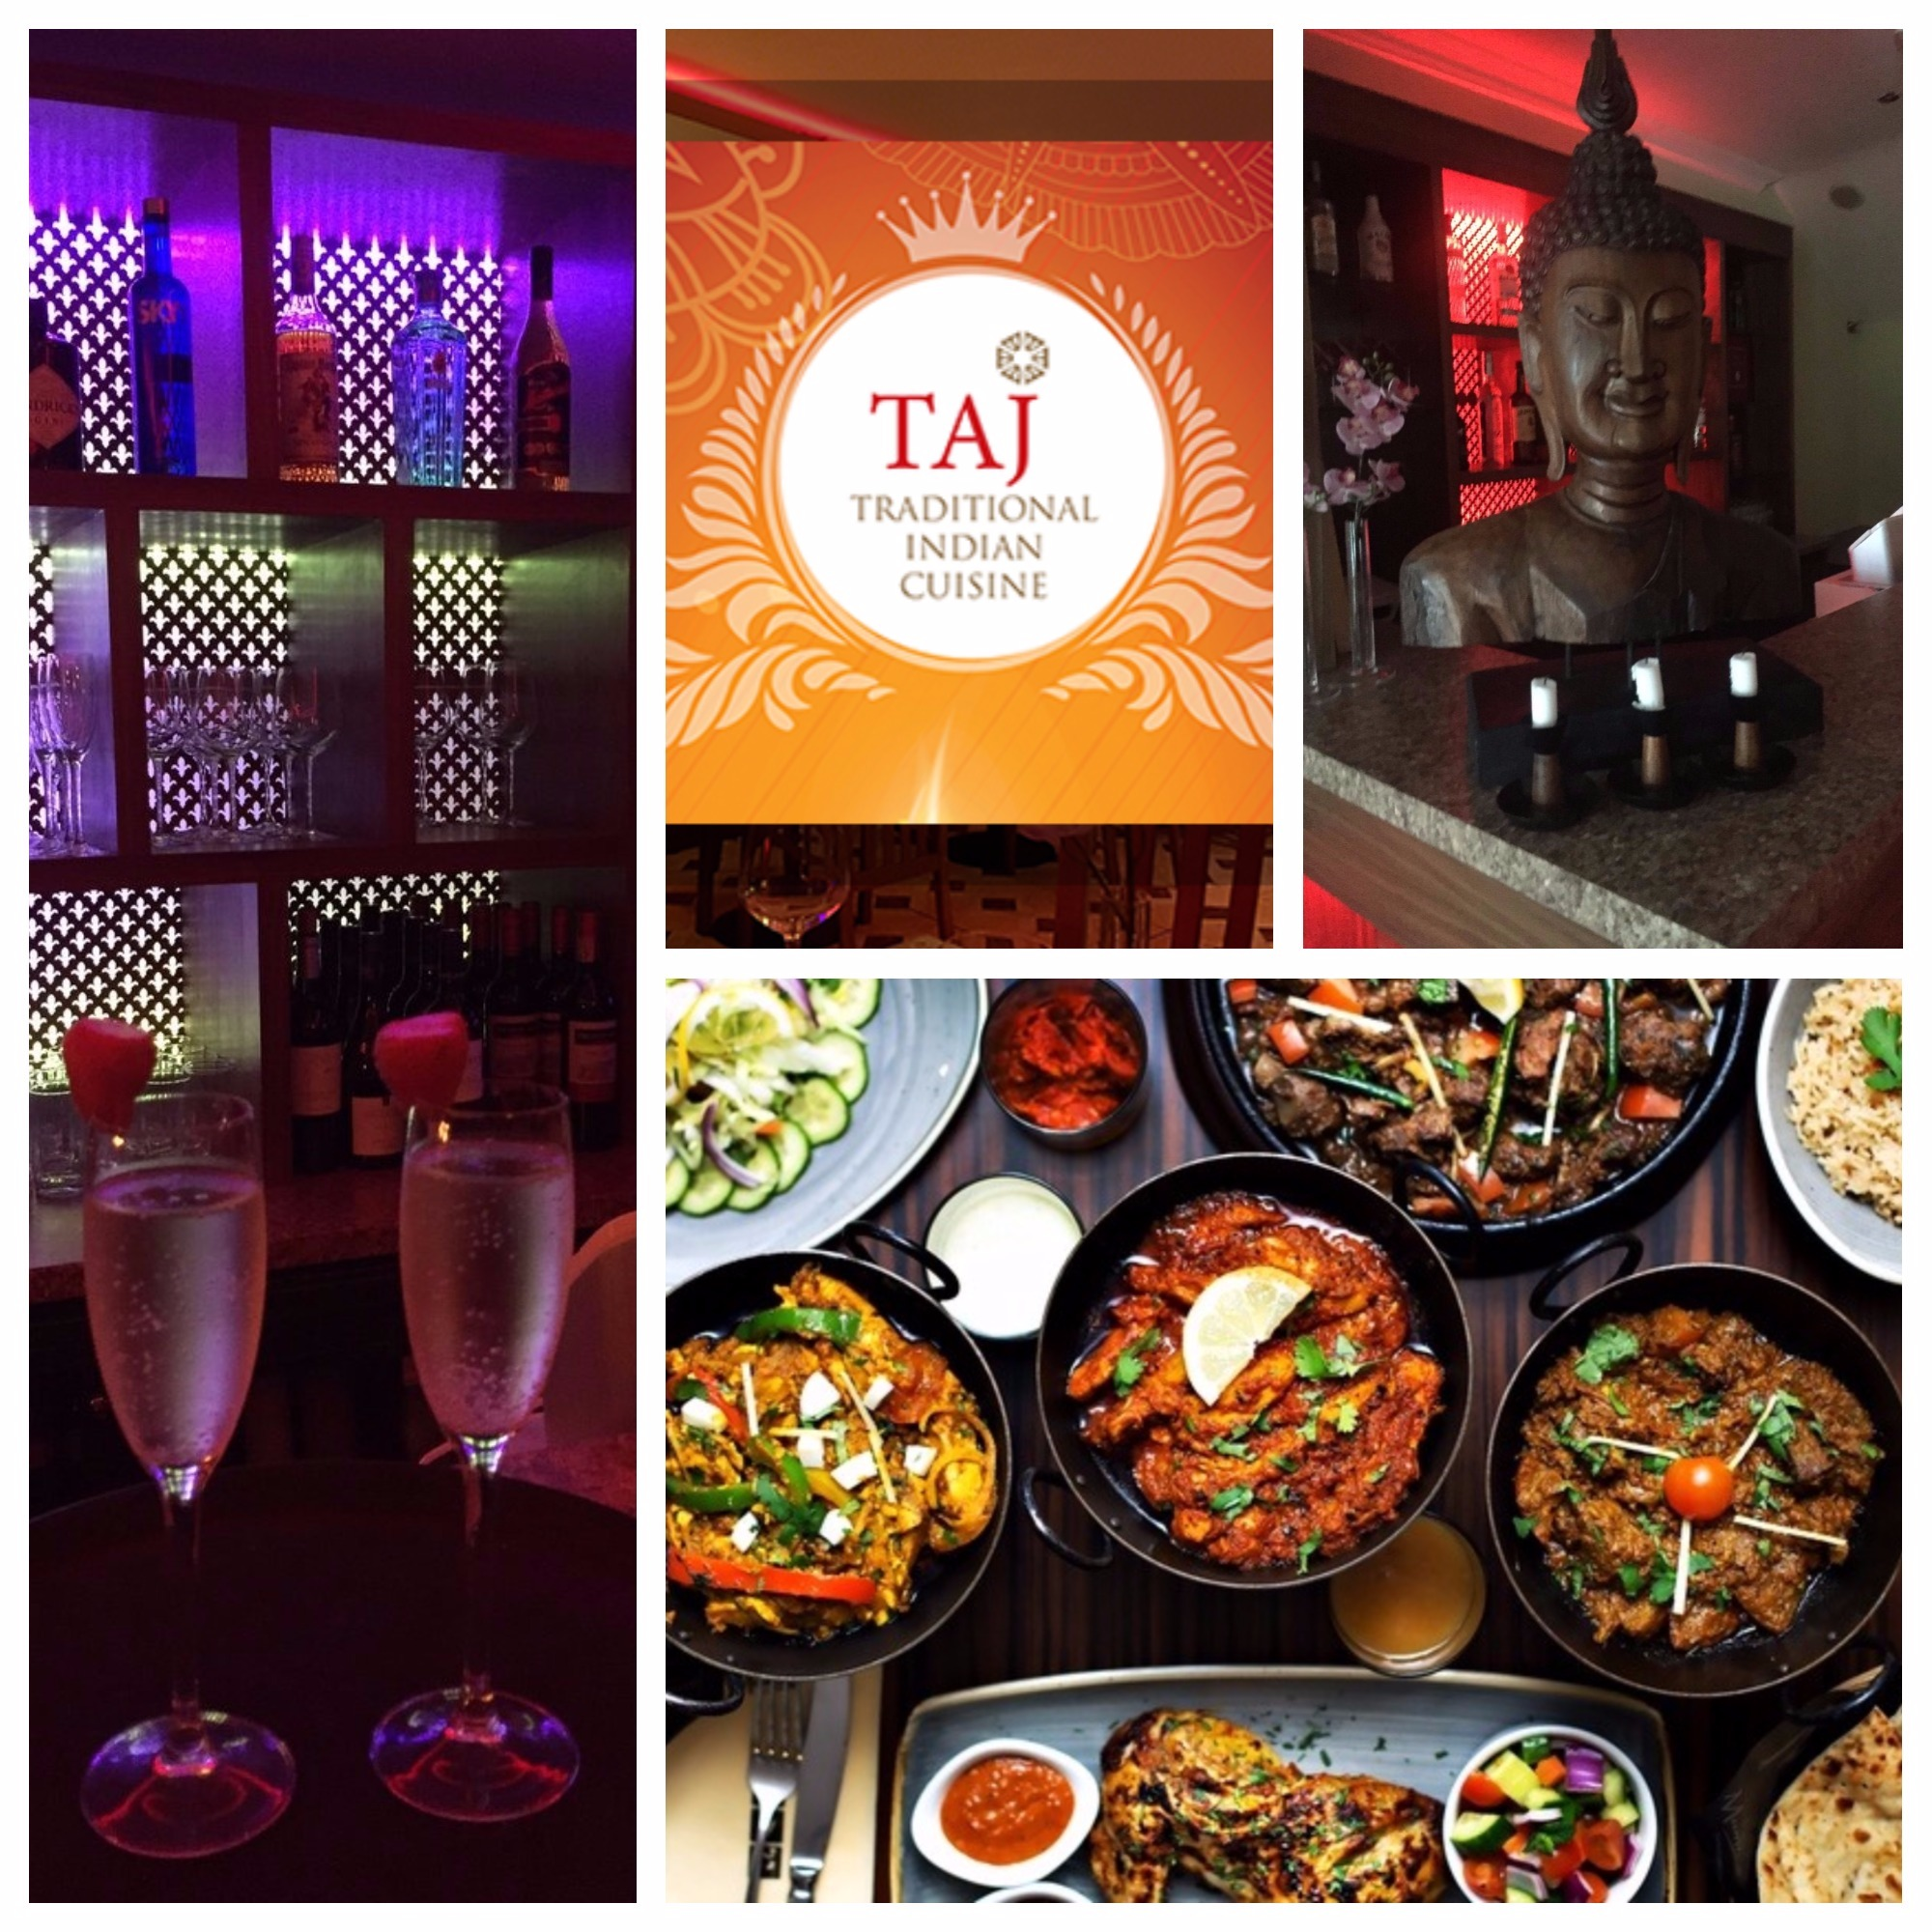 TAJ-TAJ blackrock-deal of the day-blackrock-dine for two-meal for two-eating out in dublin-The Taj-indian cuisine-authentic indian cuisine-indian